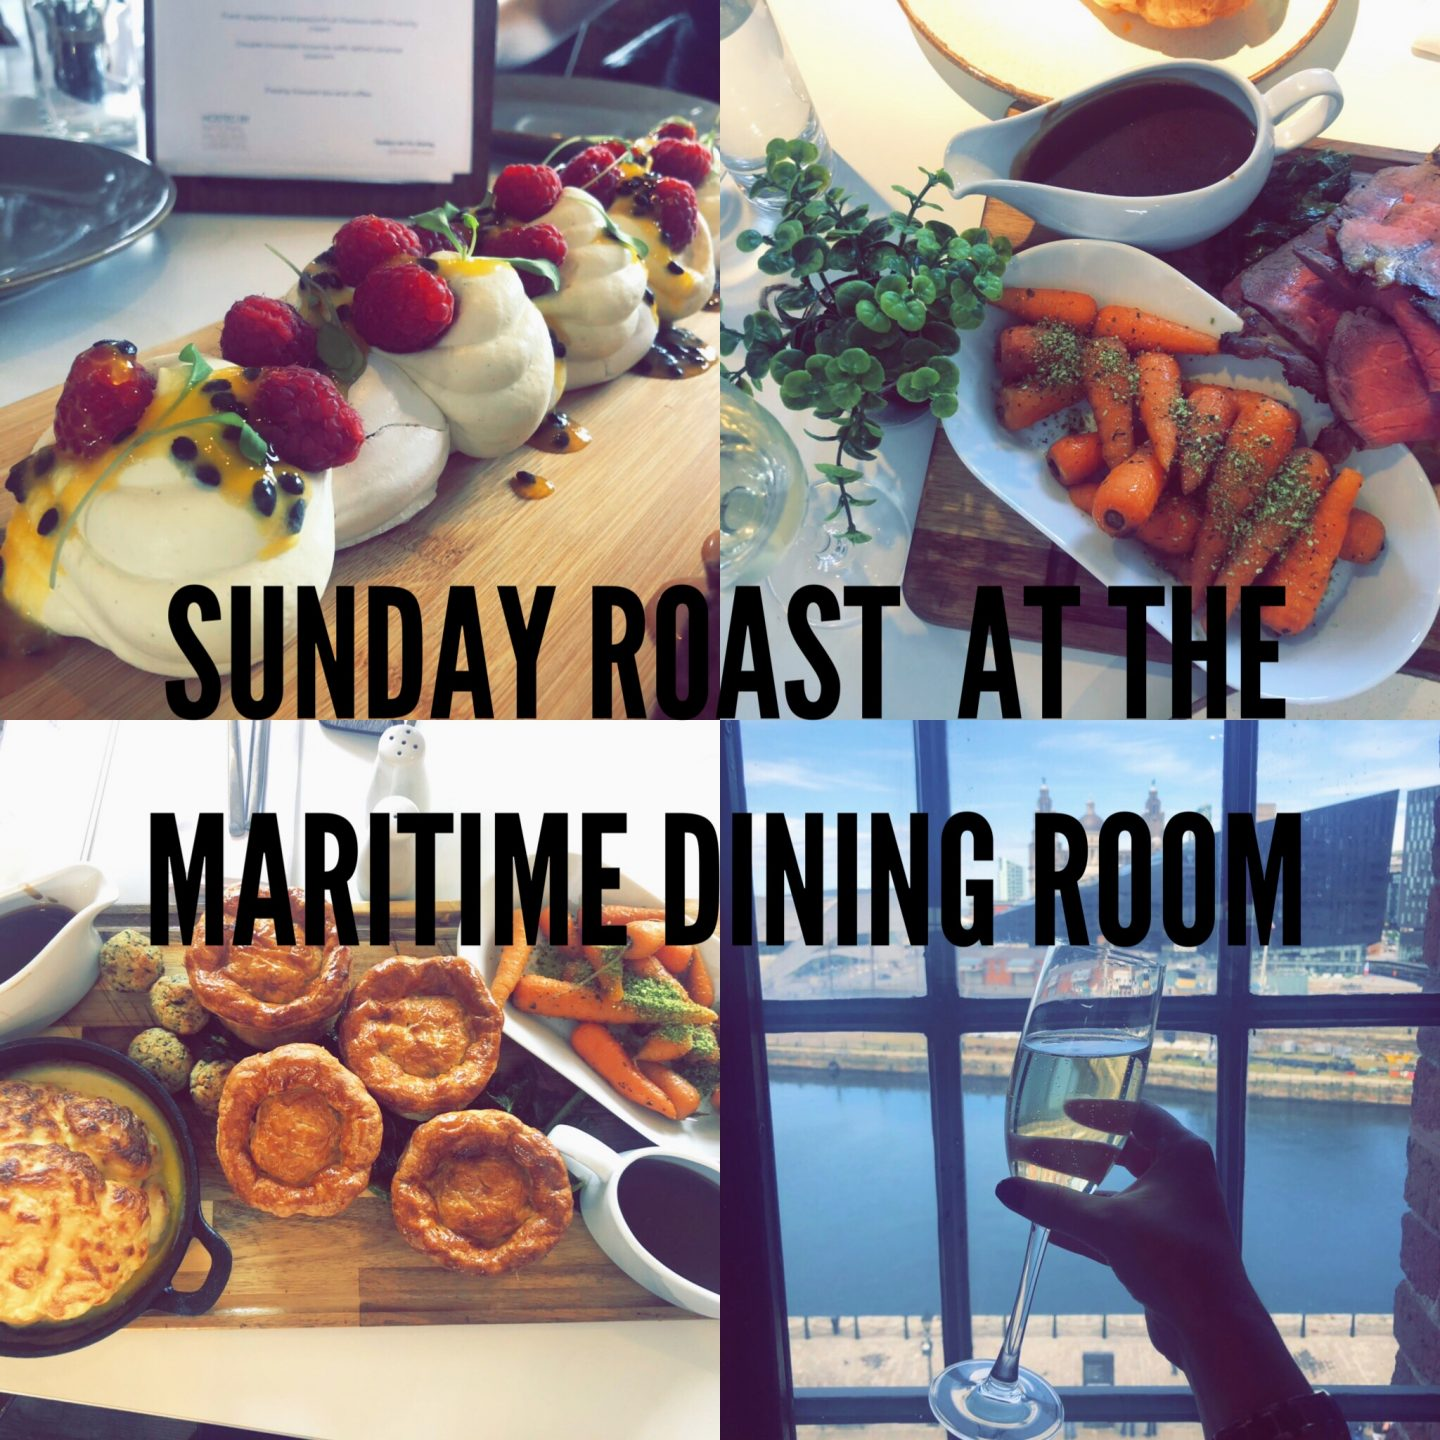 A Sunday Roast at the Maritime Dining Room